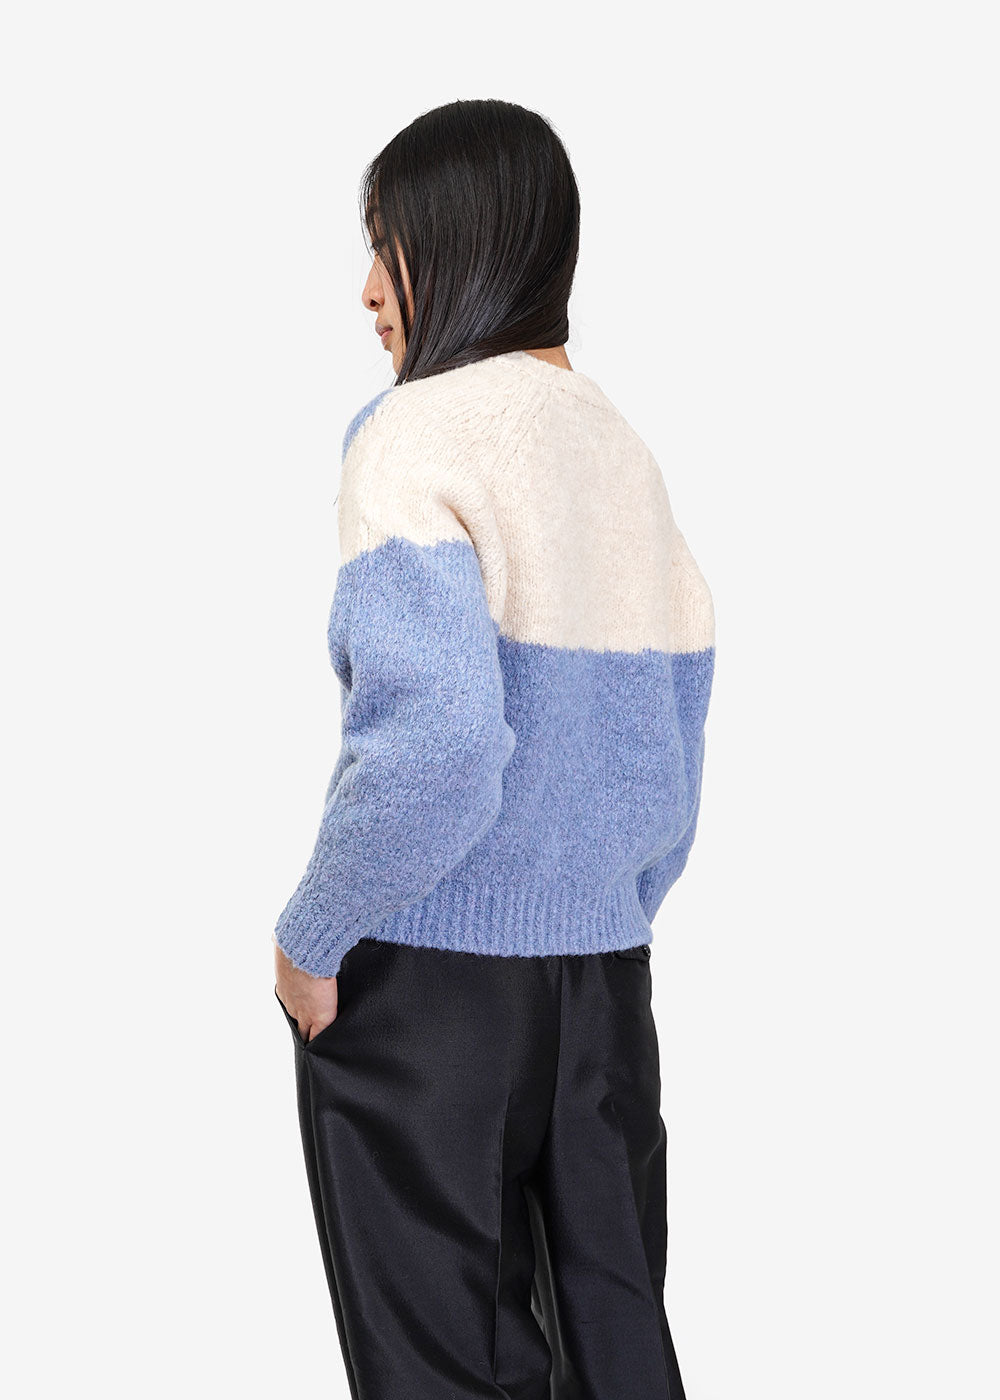 Paloma Wool Blue Yin Yang Sweater — Shop sustainable, slow and ethical fashion at New Classics Studios